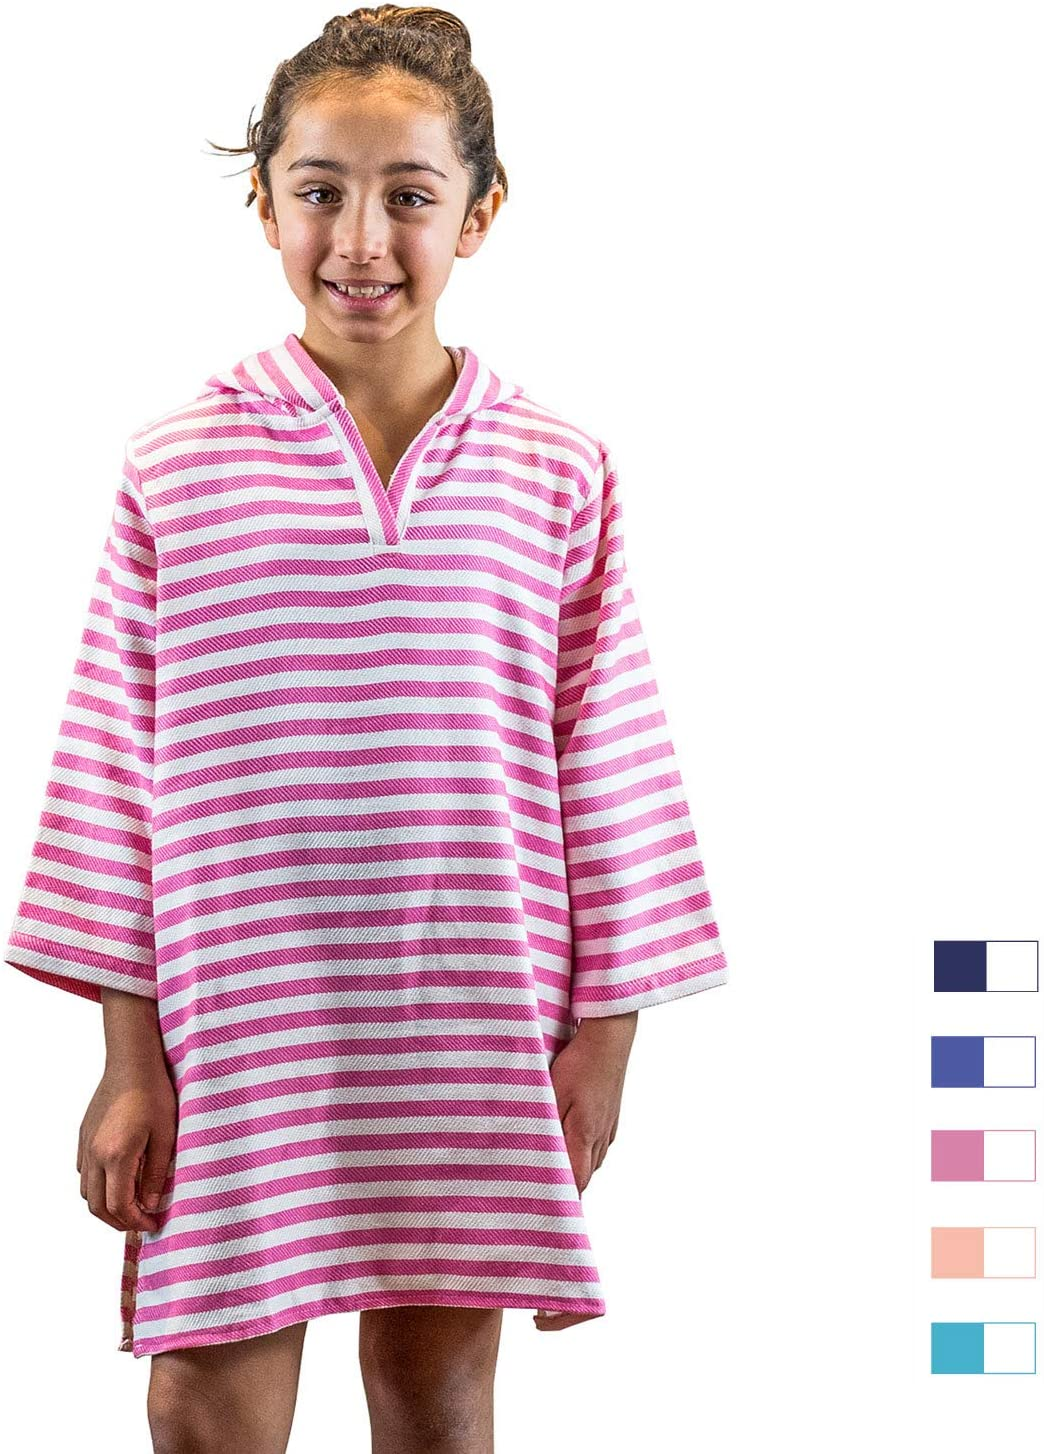 SAMMIMIS Kids Hooded Towel Cover Up, 100% Turkish Cotton, Premium Quality S Pink/White